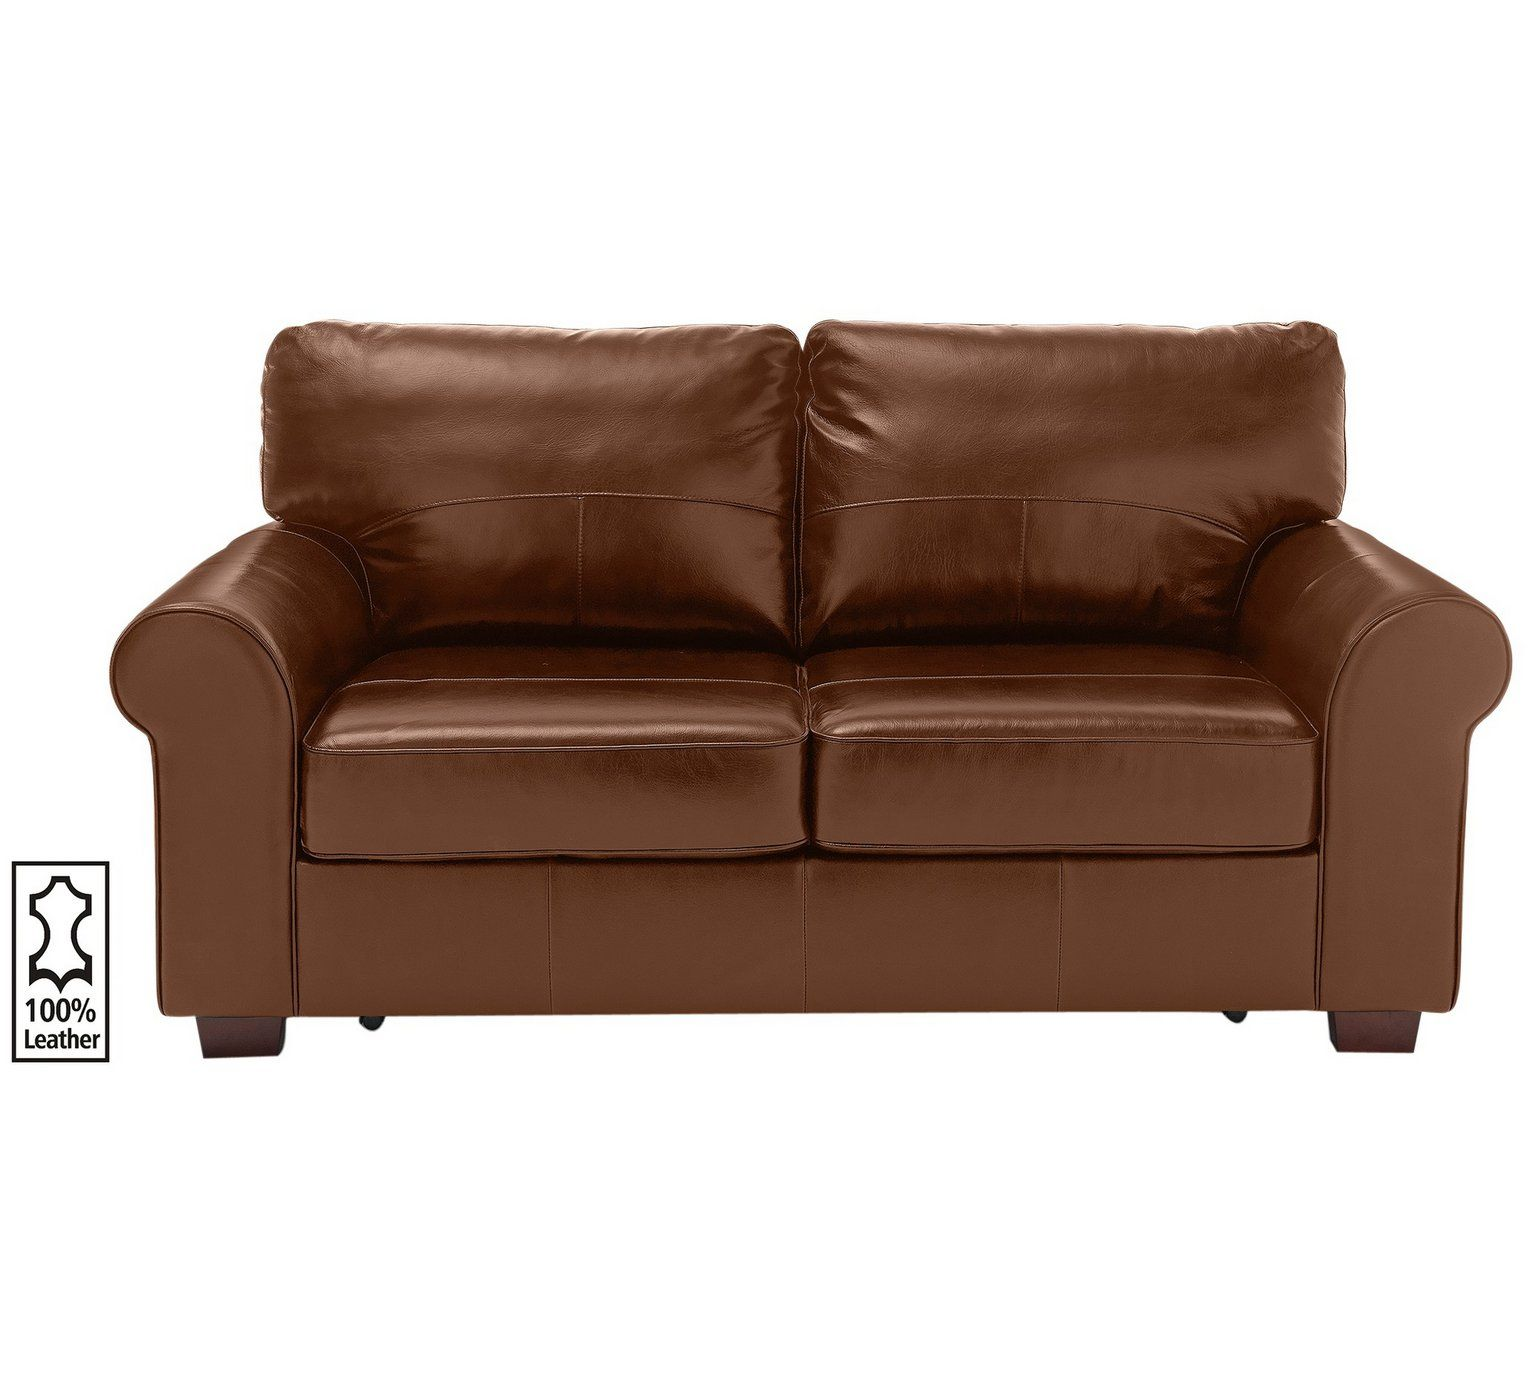 Buy Heart of House Salisbury 2 Seater Leather Sofa Bed - Tan ...